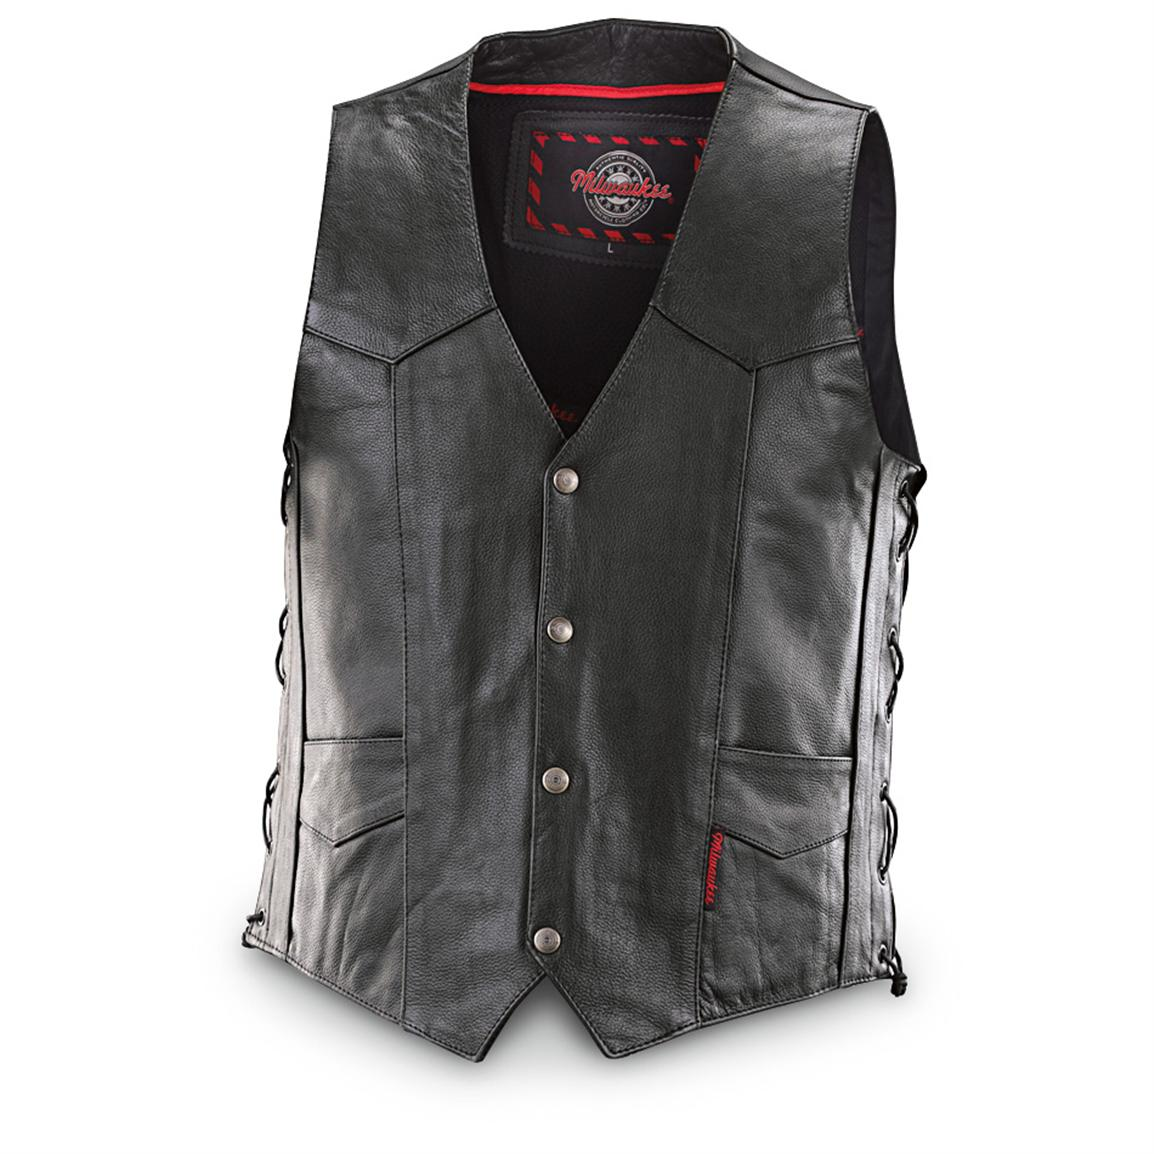 Milwaukee Motorcycle® Side-lace Vest with Conceal and Carry Pocket, Black